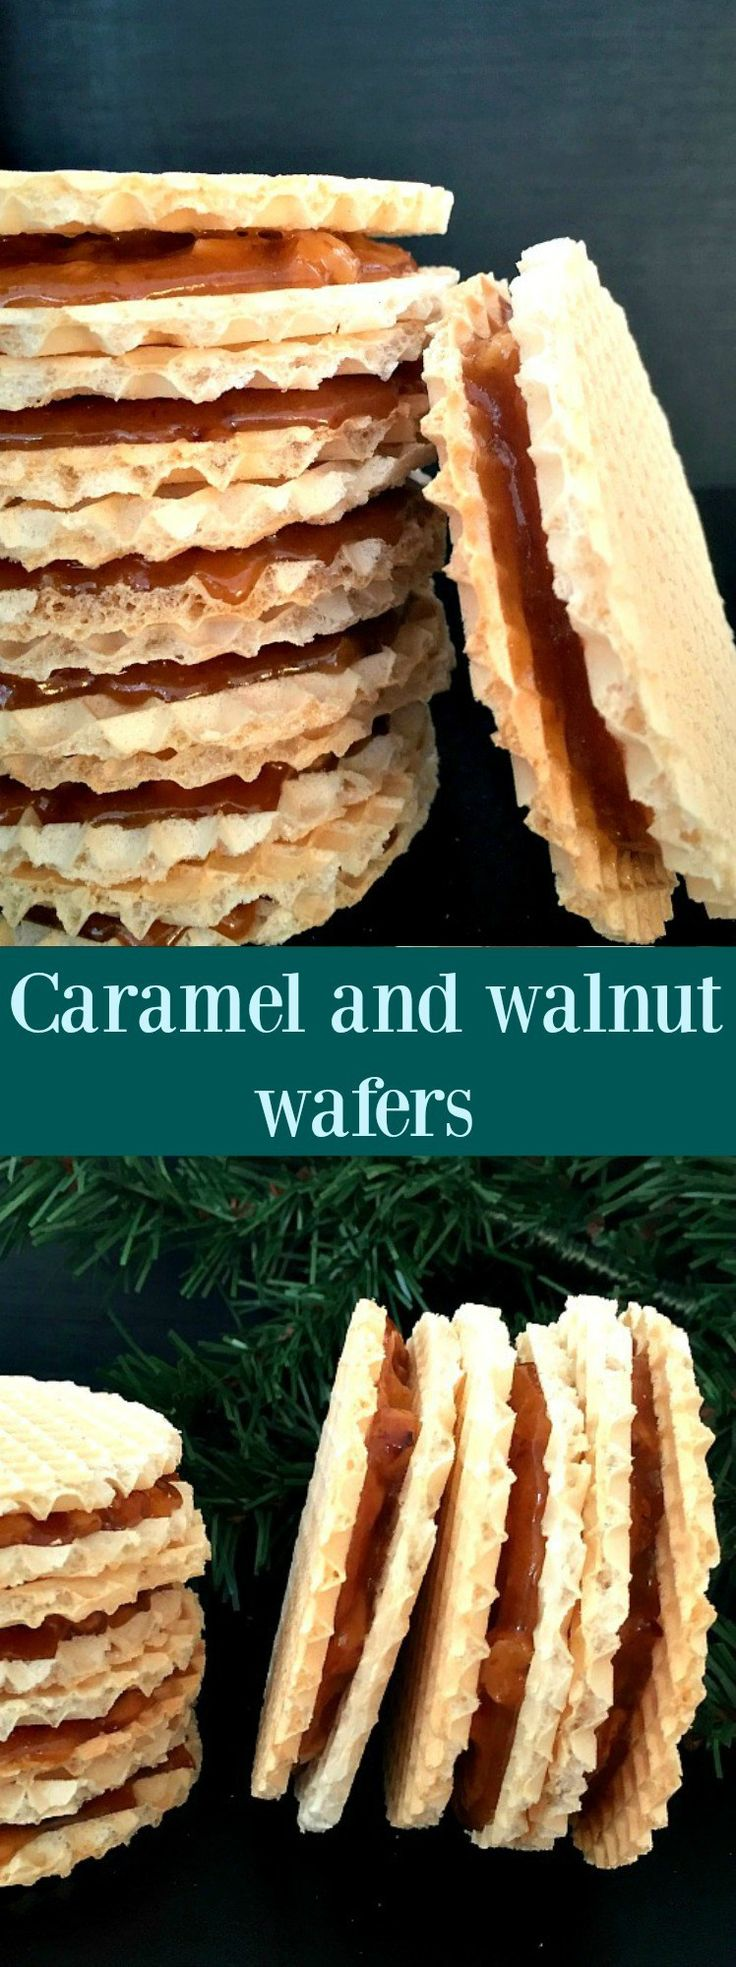 Caramel and walnut wafers, my favourite sweet treat ever since I was a ...